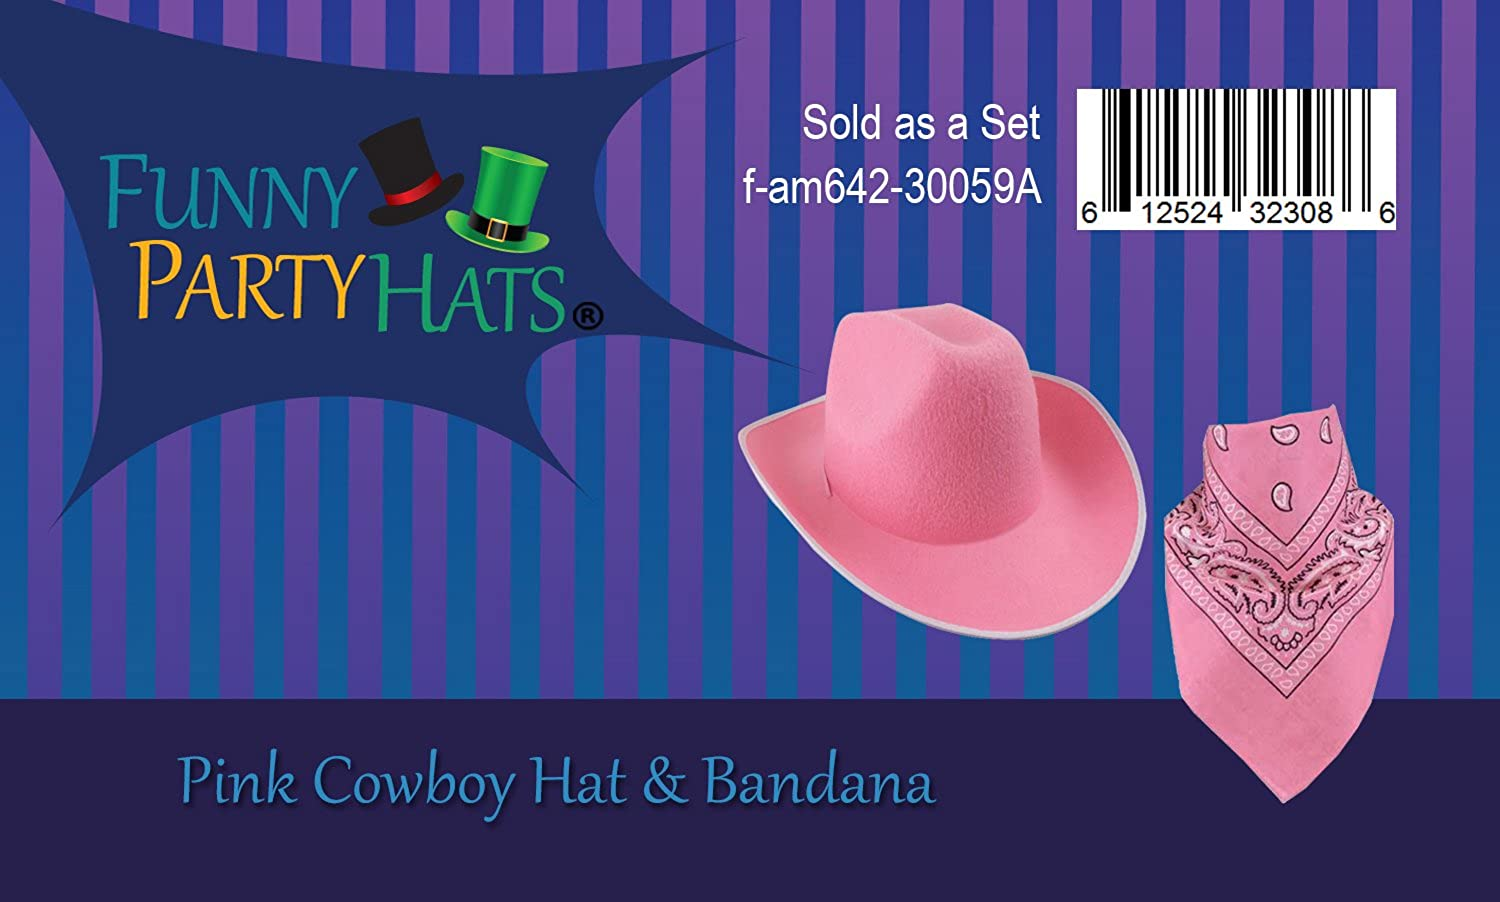 966c3117d96be Amazon.com  Pink Cowboy Hat - Felt Cowboy Hats w  Paisley Bandana by Funny  Party Hats  Clothing